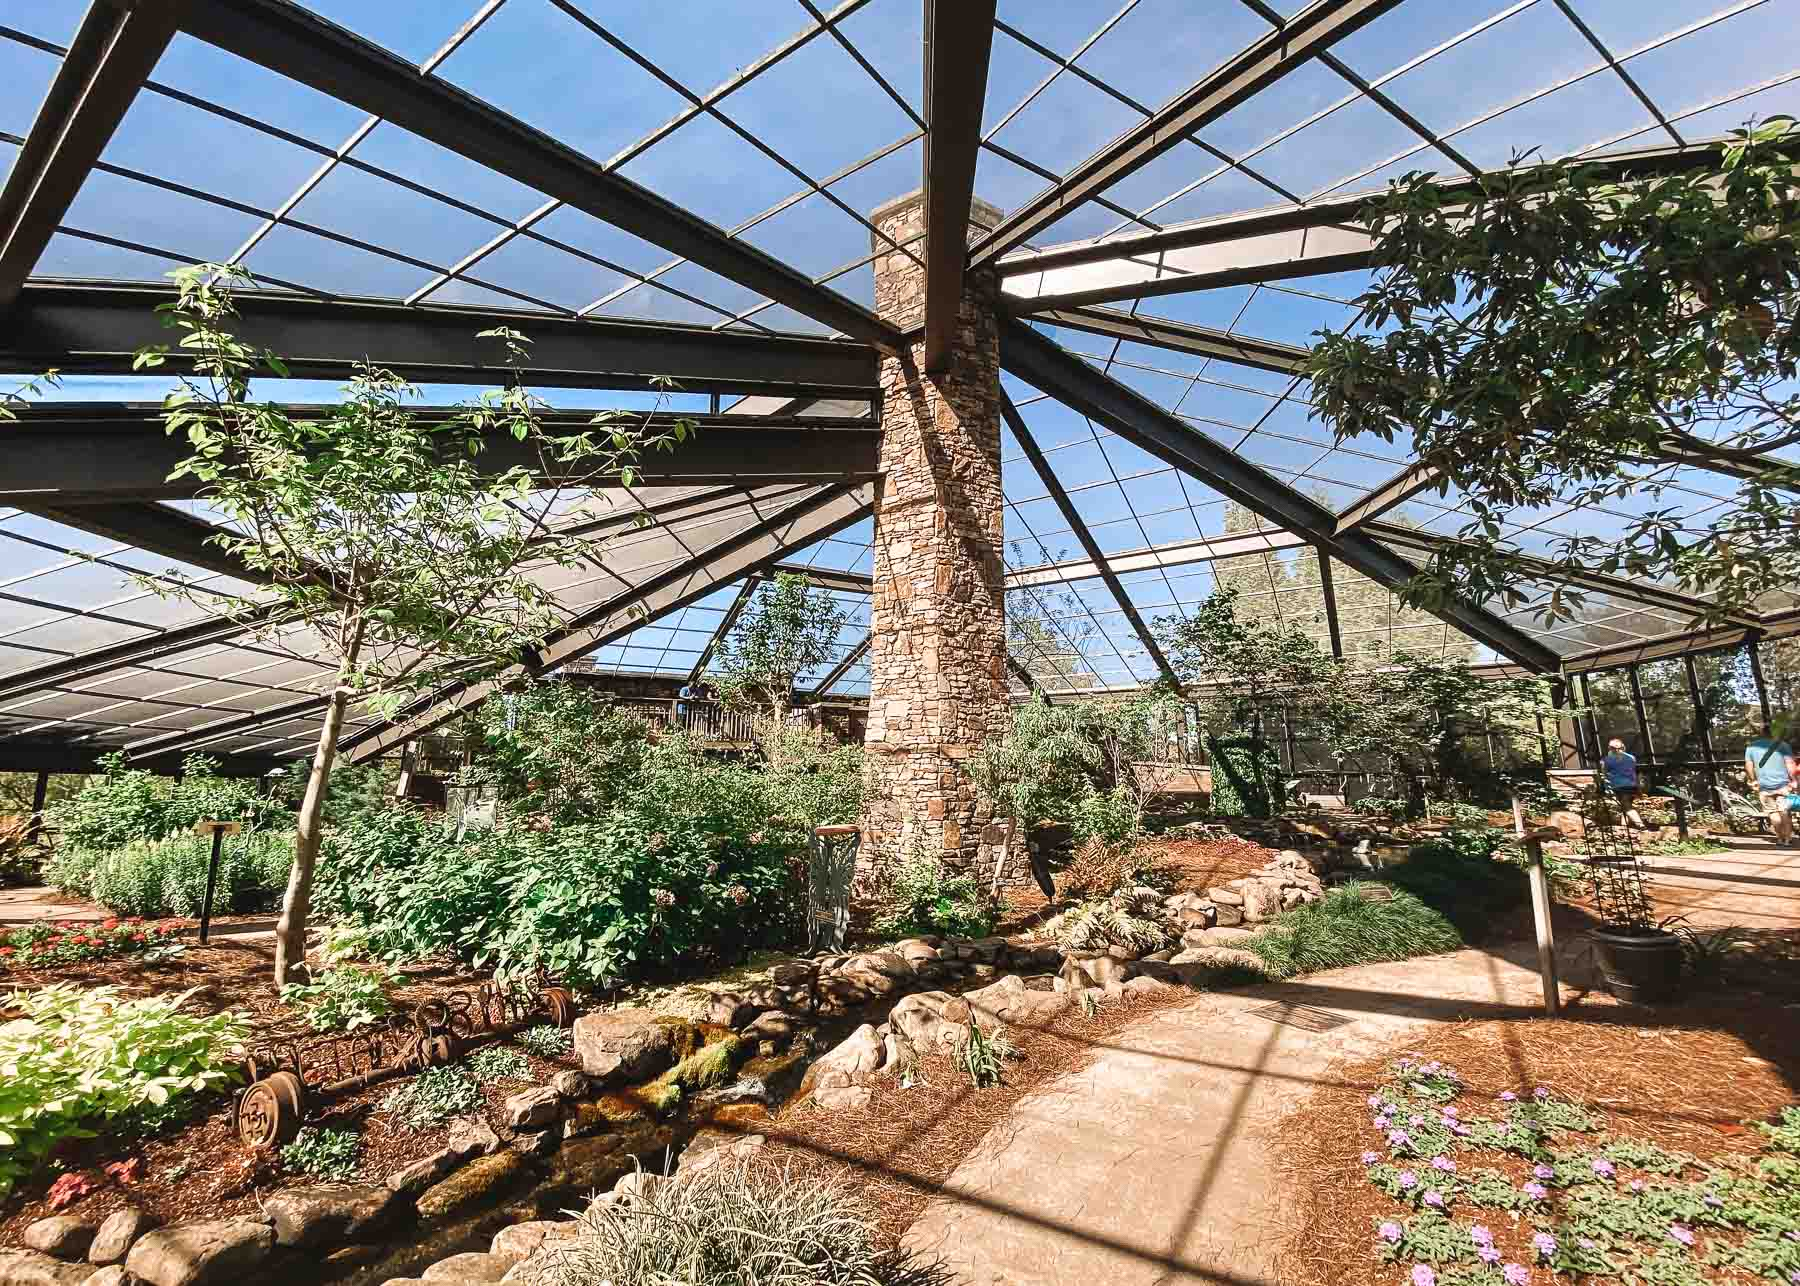 Interior of butterfly house in the Huntsville Botanical Gardens in Alabama